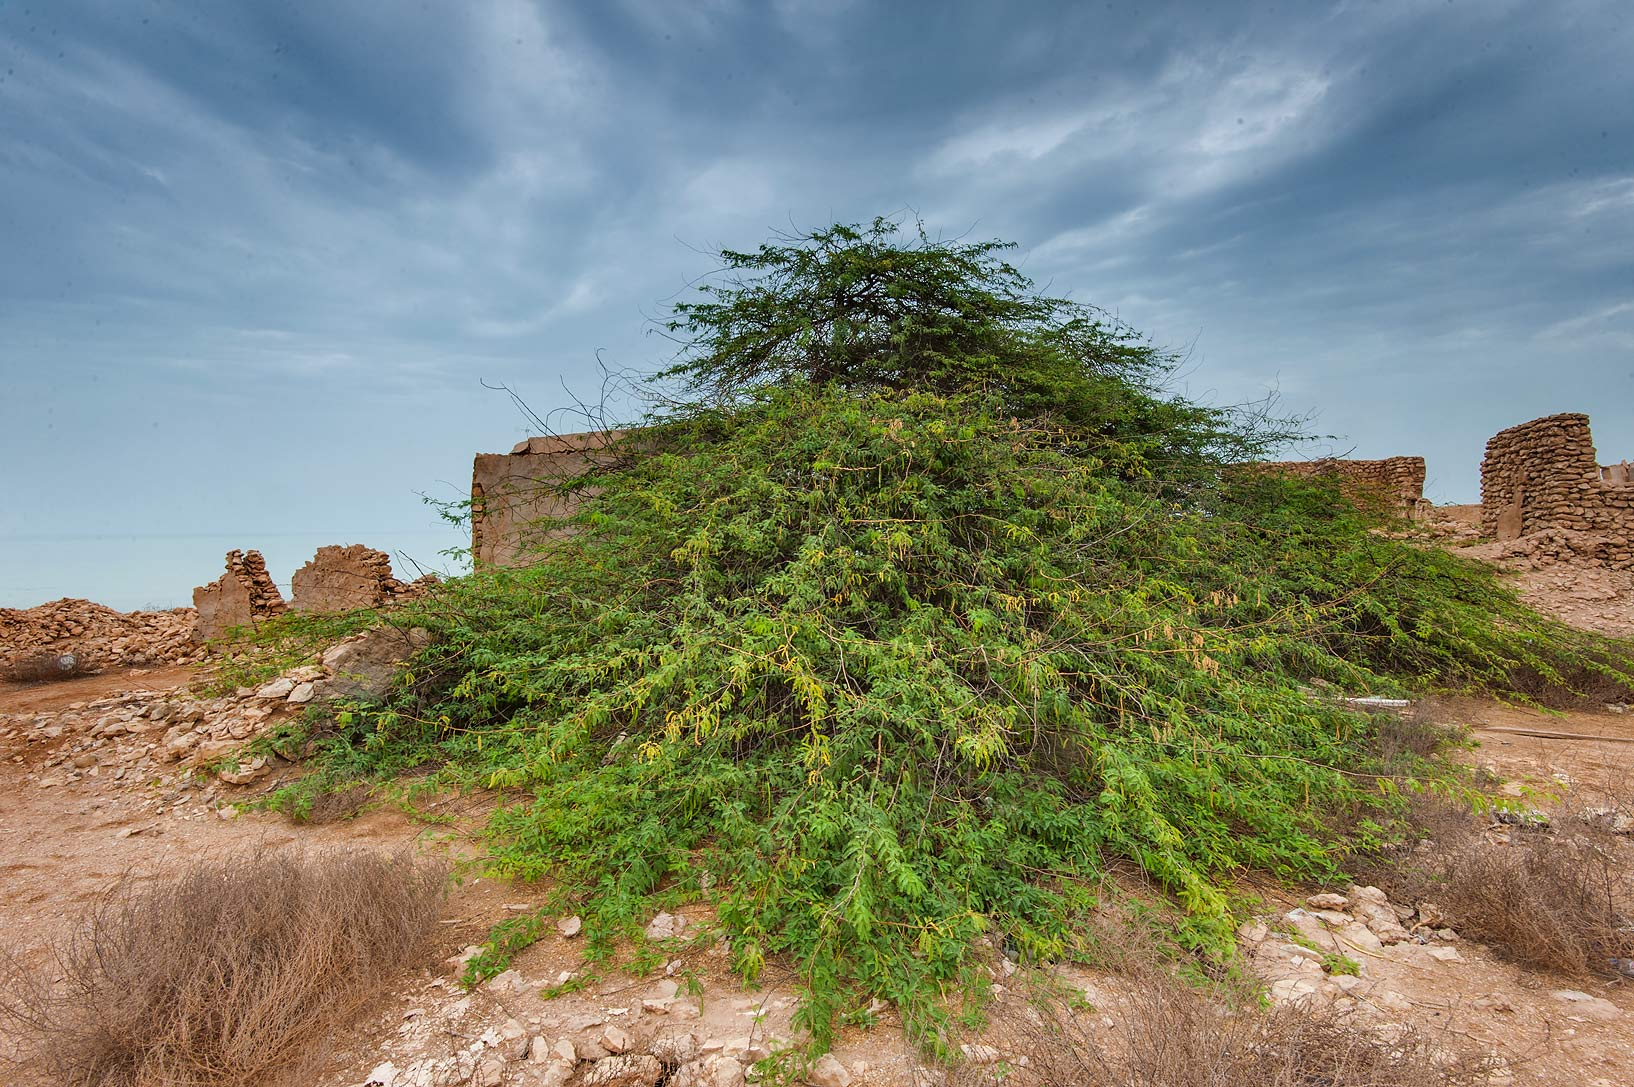 Mesquite tree (Prosopis juliflora, Prosopis...Jumayl) west of Ruwais. Northern Qatar